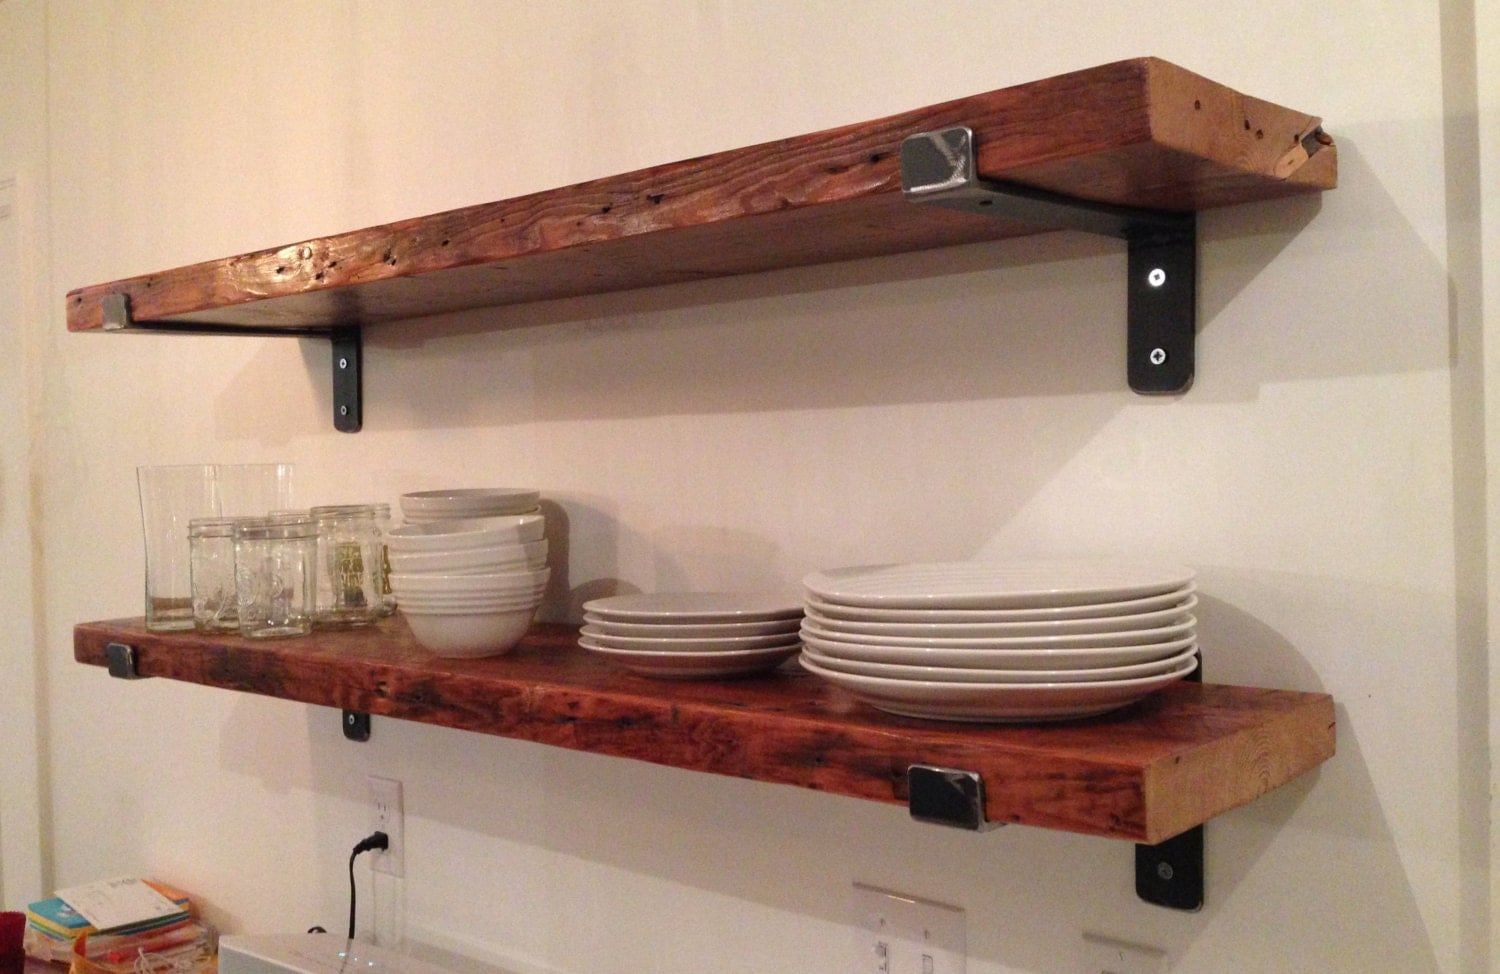 48 x 9 5 reclaimed wood shelf with two handcrafted by lrdesignlab